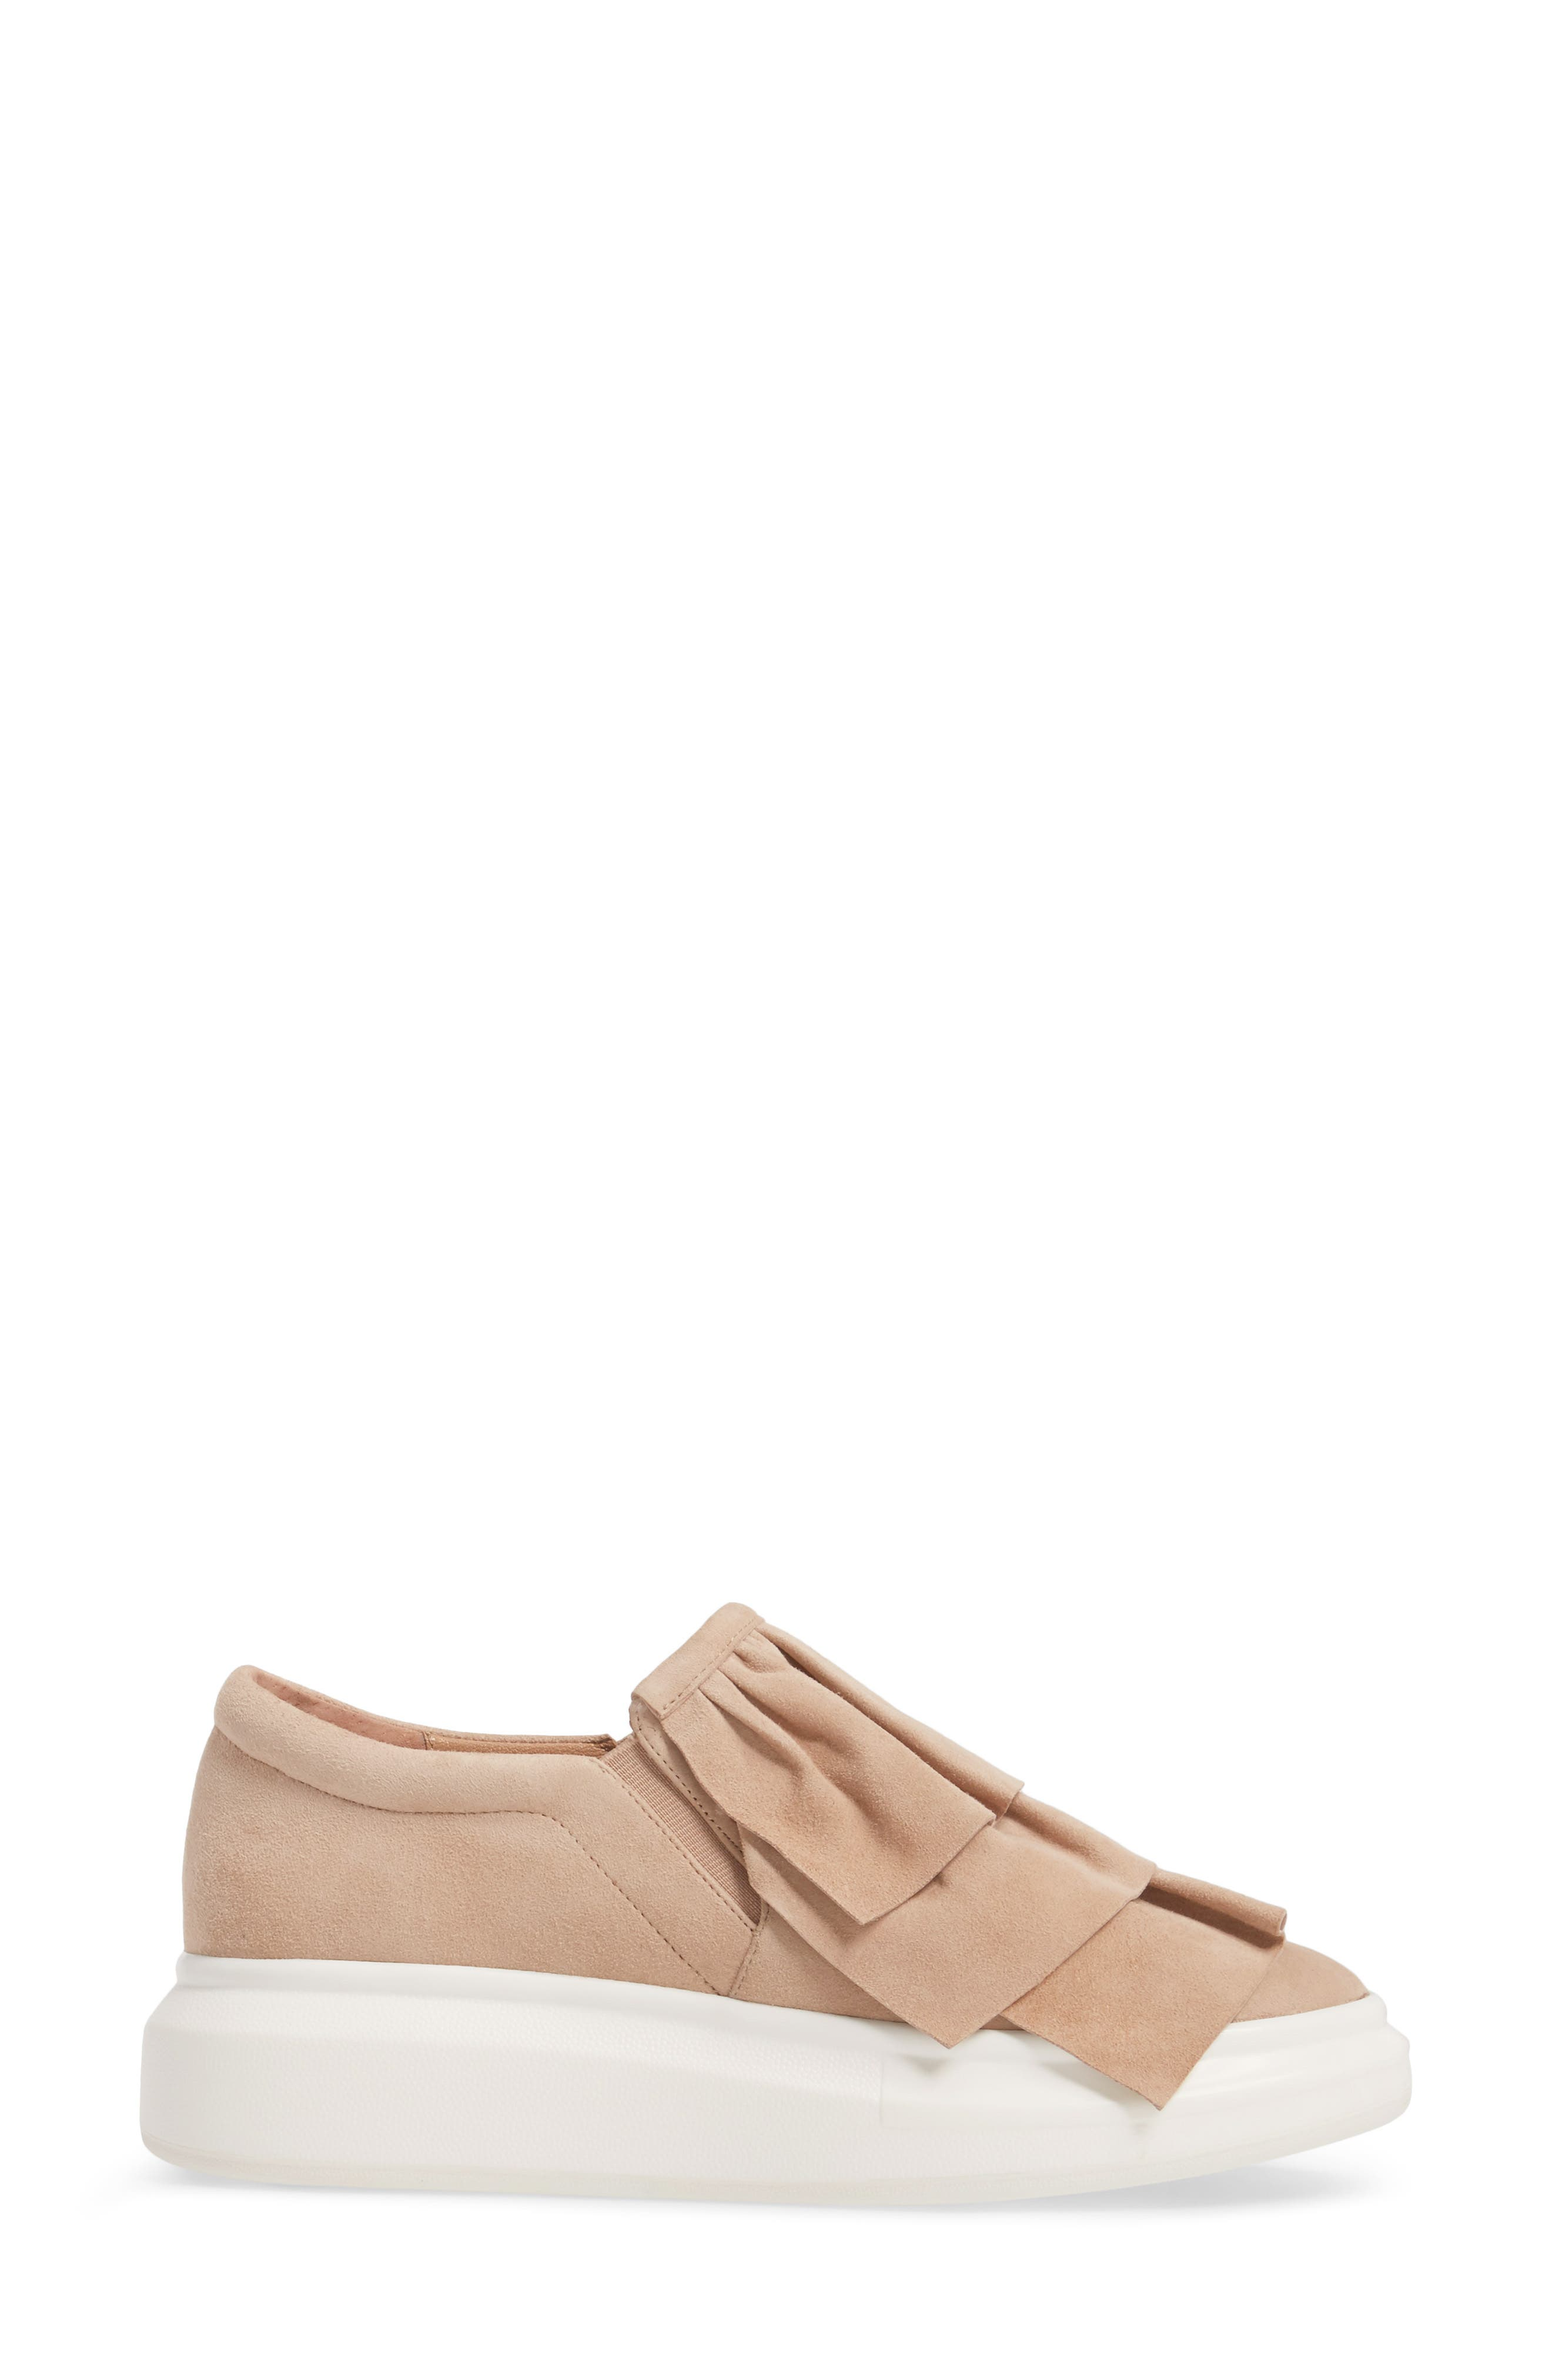 Lolo Ruffle Slip-On,                             Alternate thumbnail 3, color,                             Dusty Rose Suede